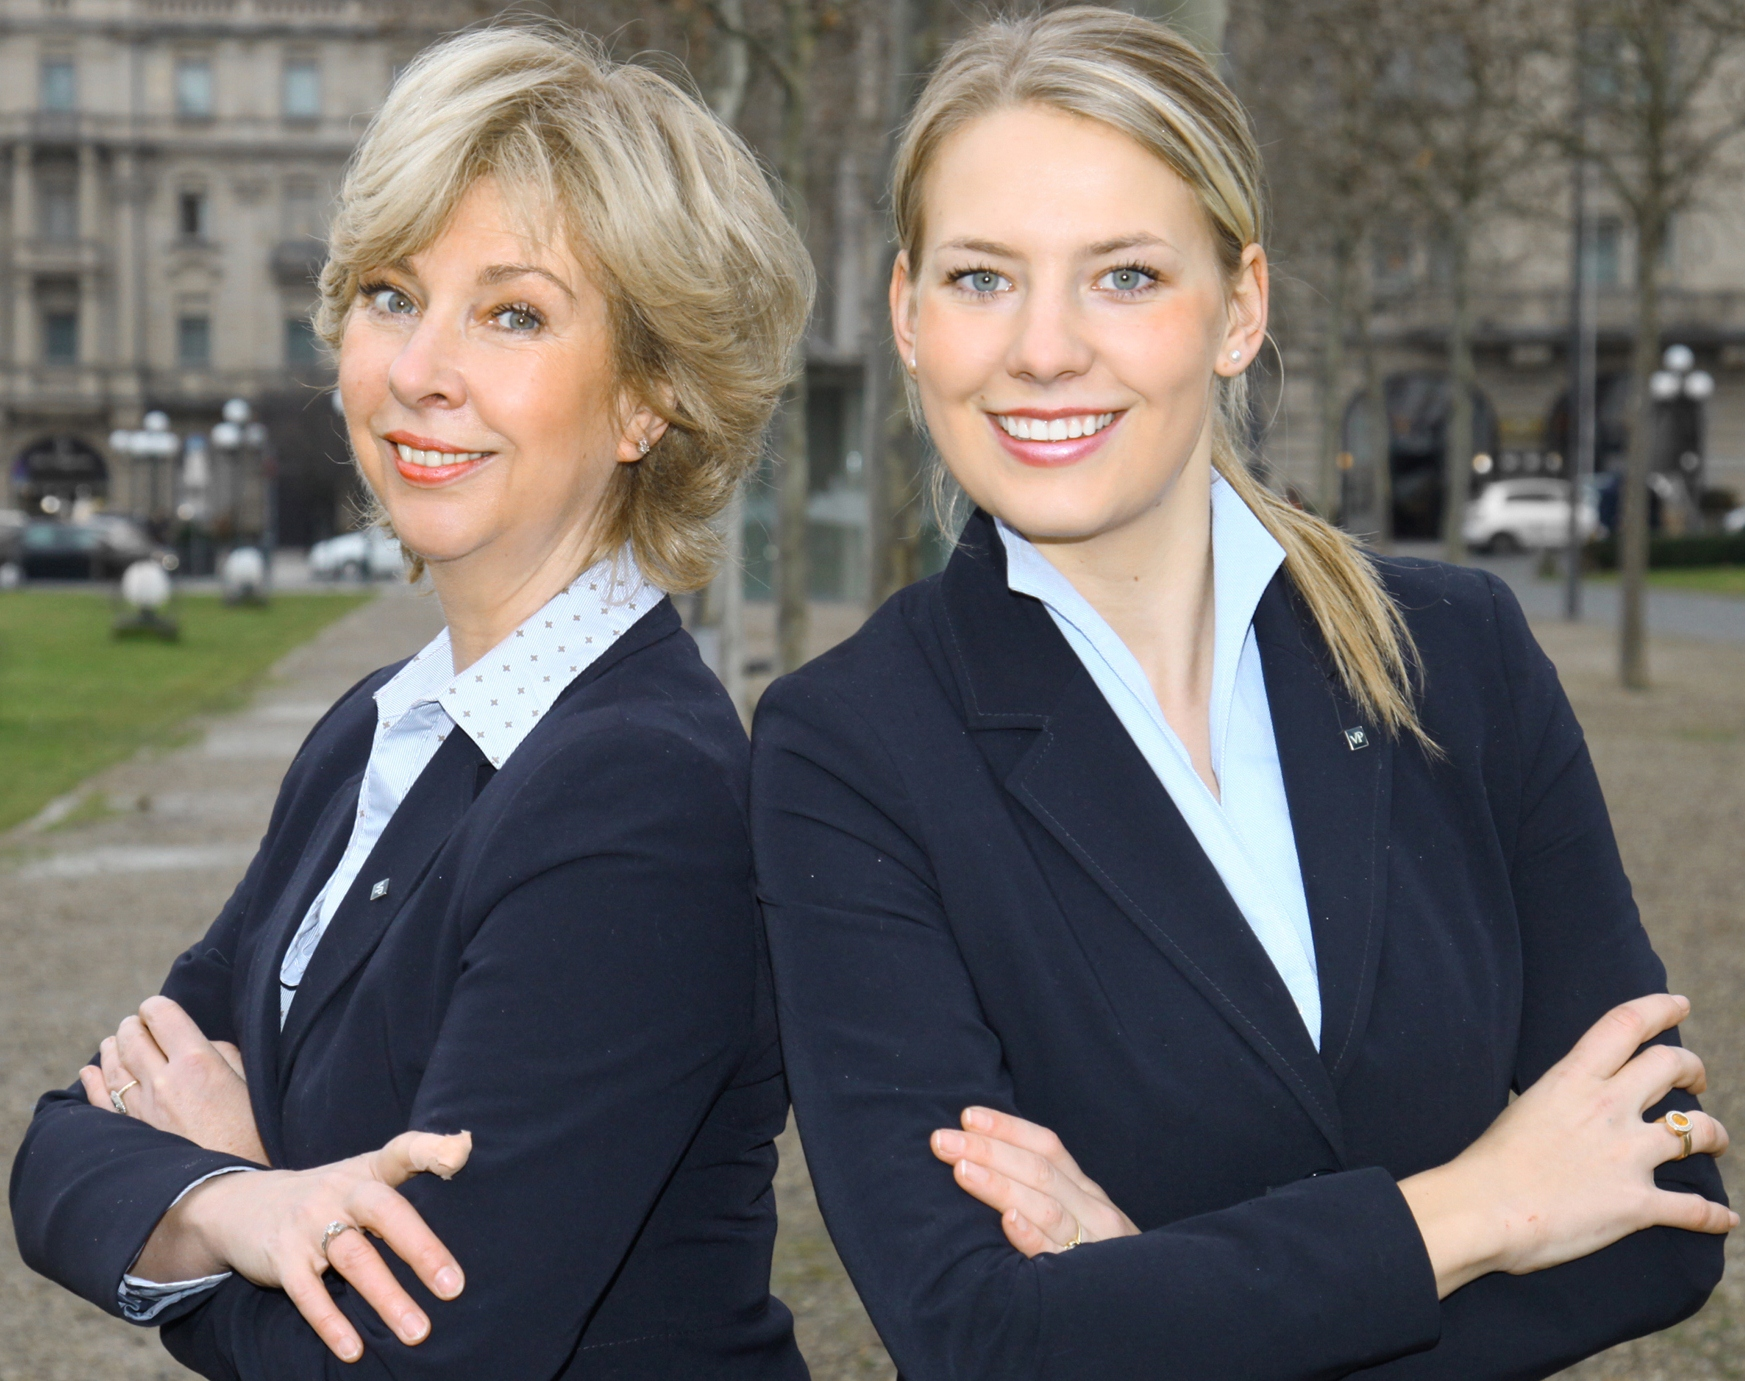 Kim Schlaak und Gabriele Wilde-Schlaak - VON POLL IMMOBILIEN Mainz